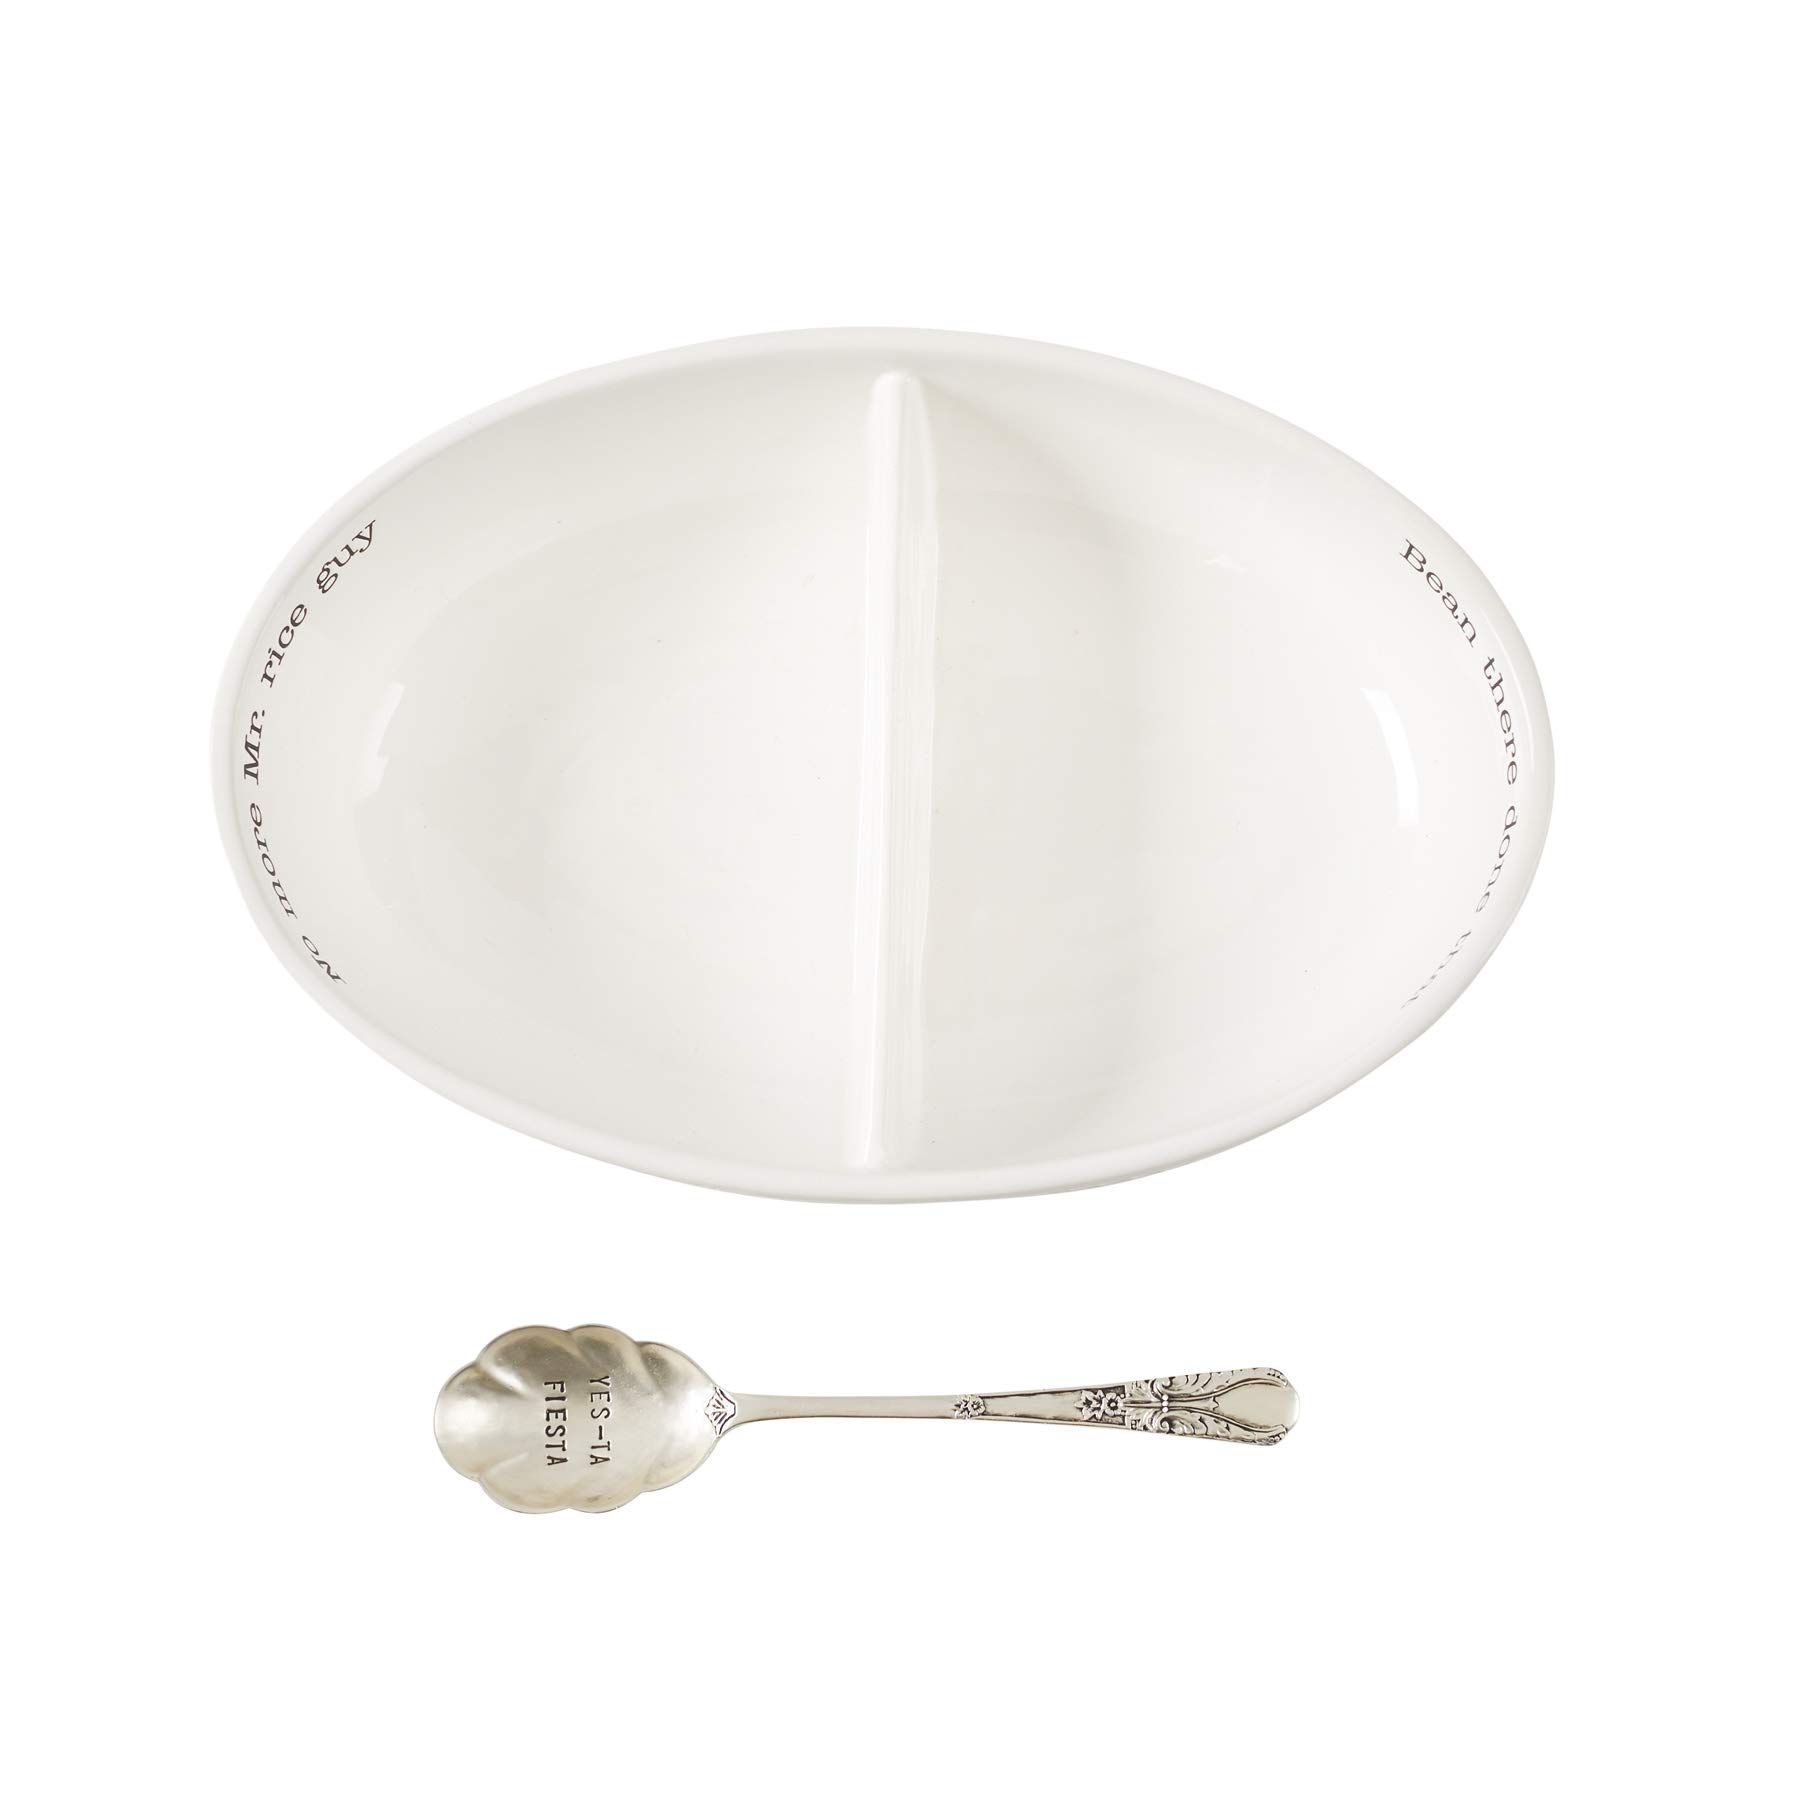 Mud Pie 46000094 Rice and Beans Divided Serving Bowl Set One Size White